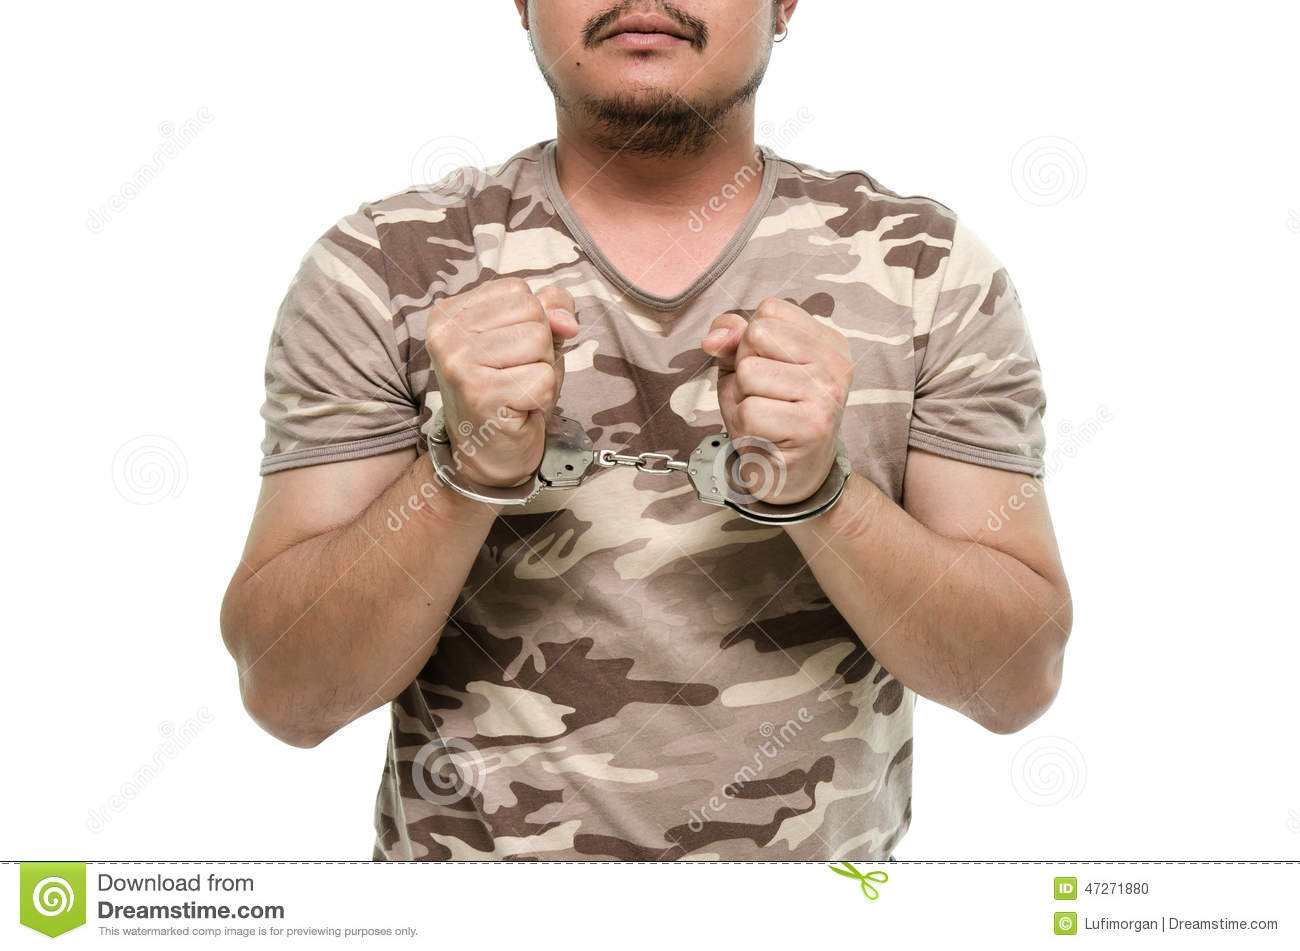 Man hands with handcuffs showing victory sign